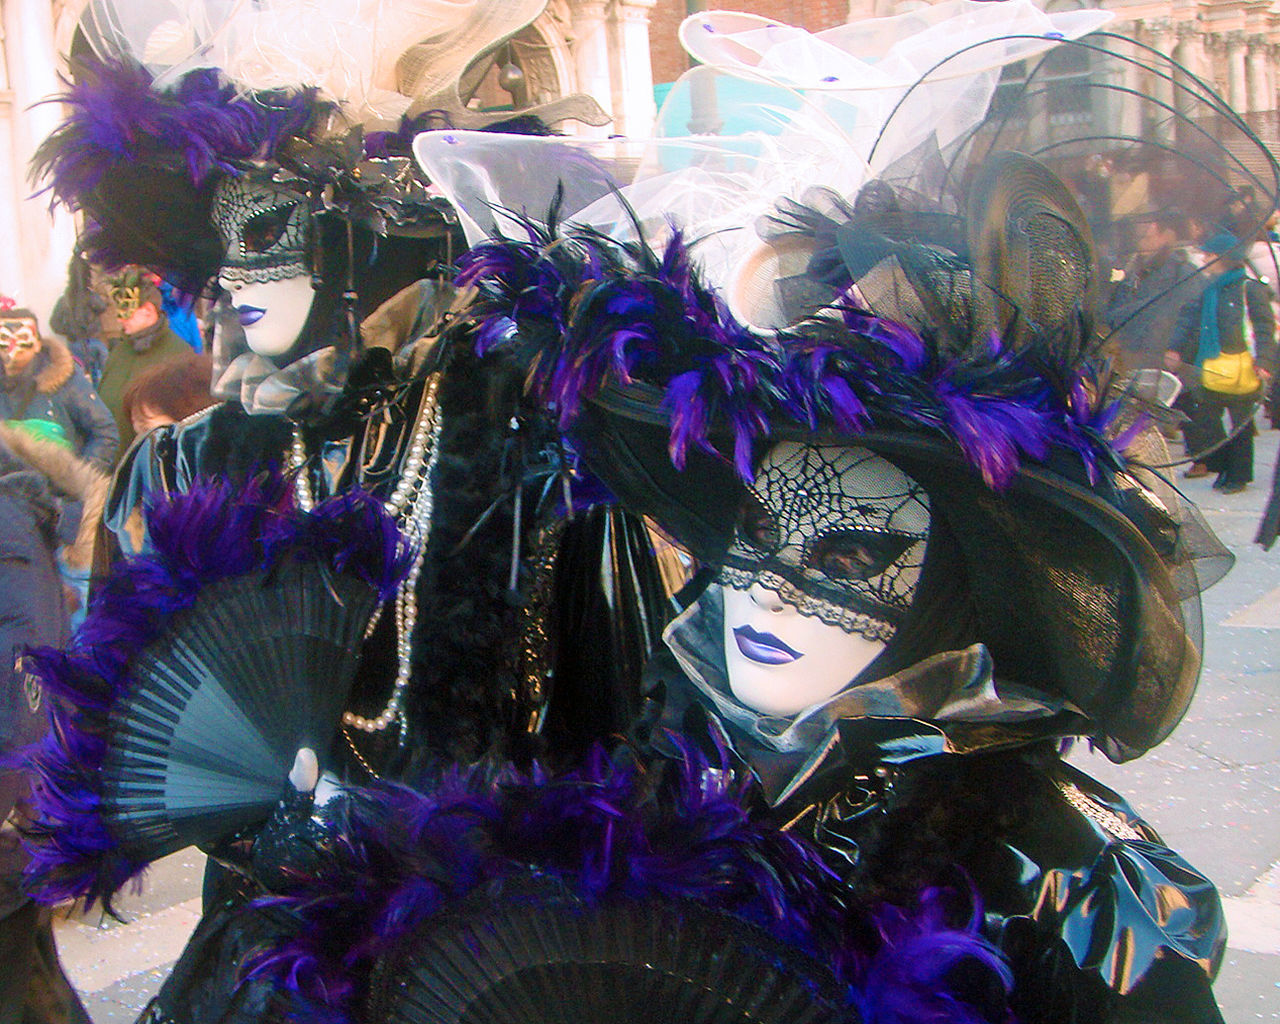 venetian mask, mask - disguise, carnival - celebration event, carnival, feather, celebration, disguise, indoors, day, no people, close-up